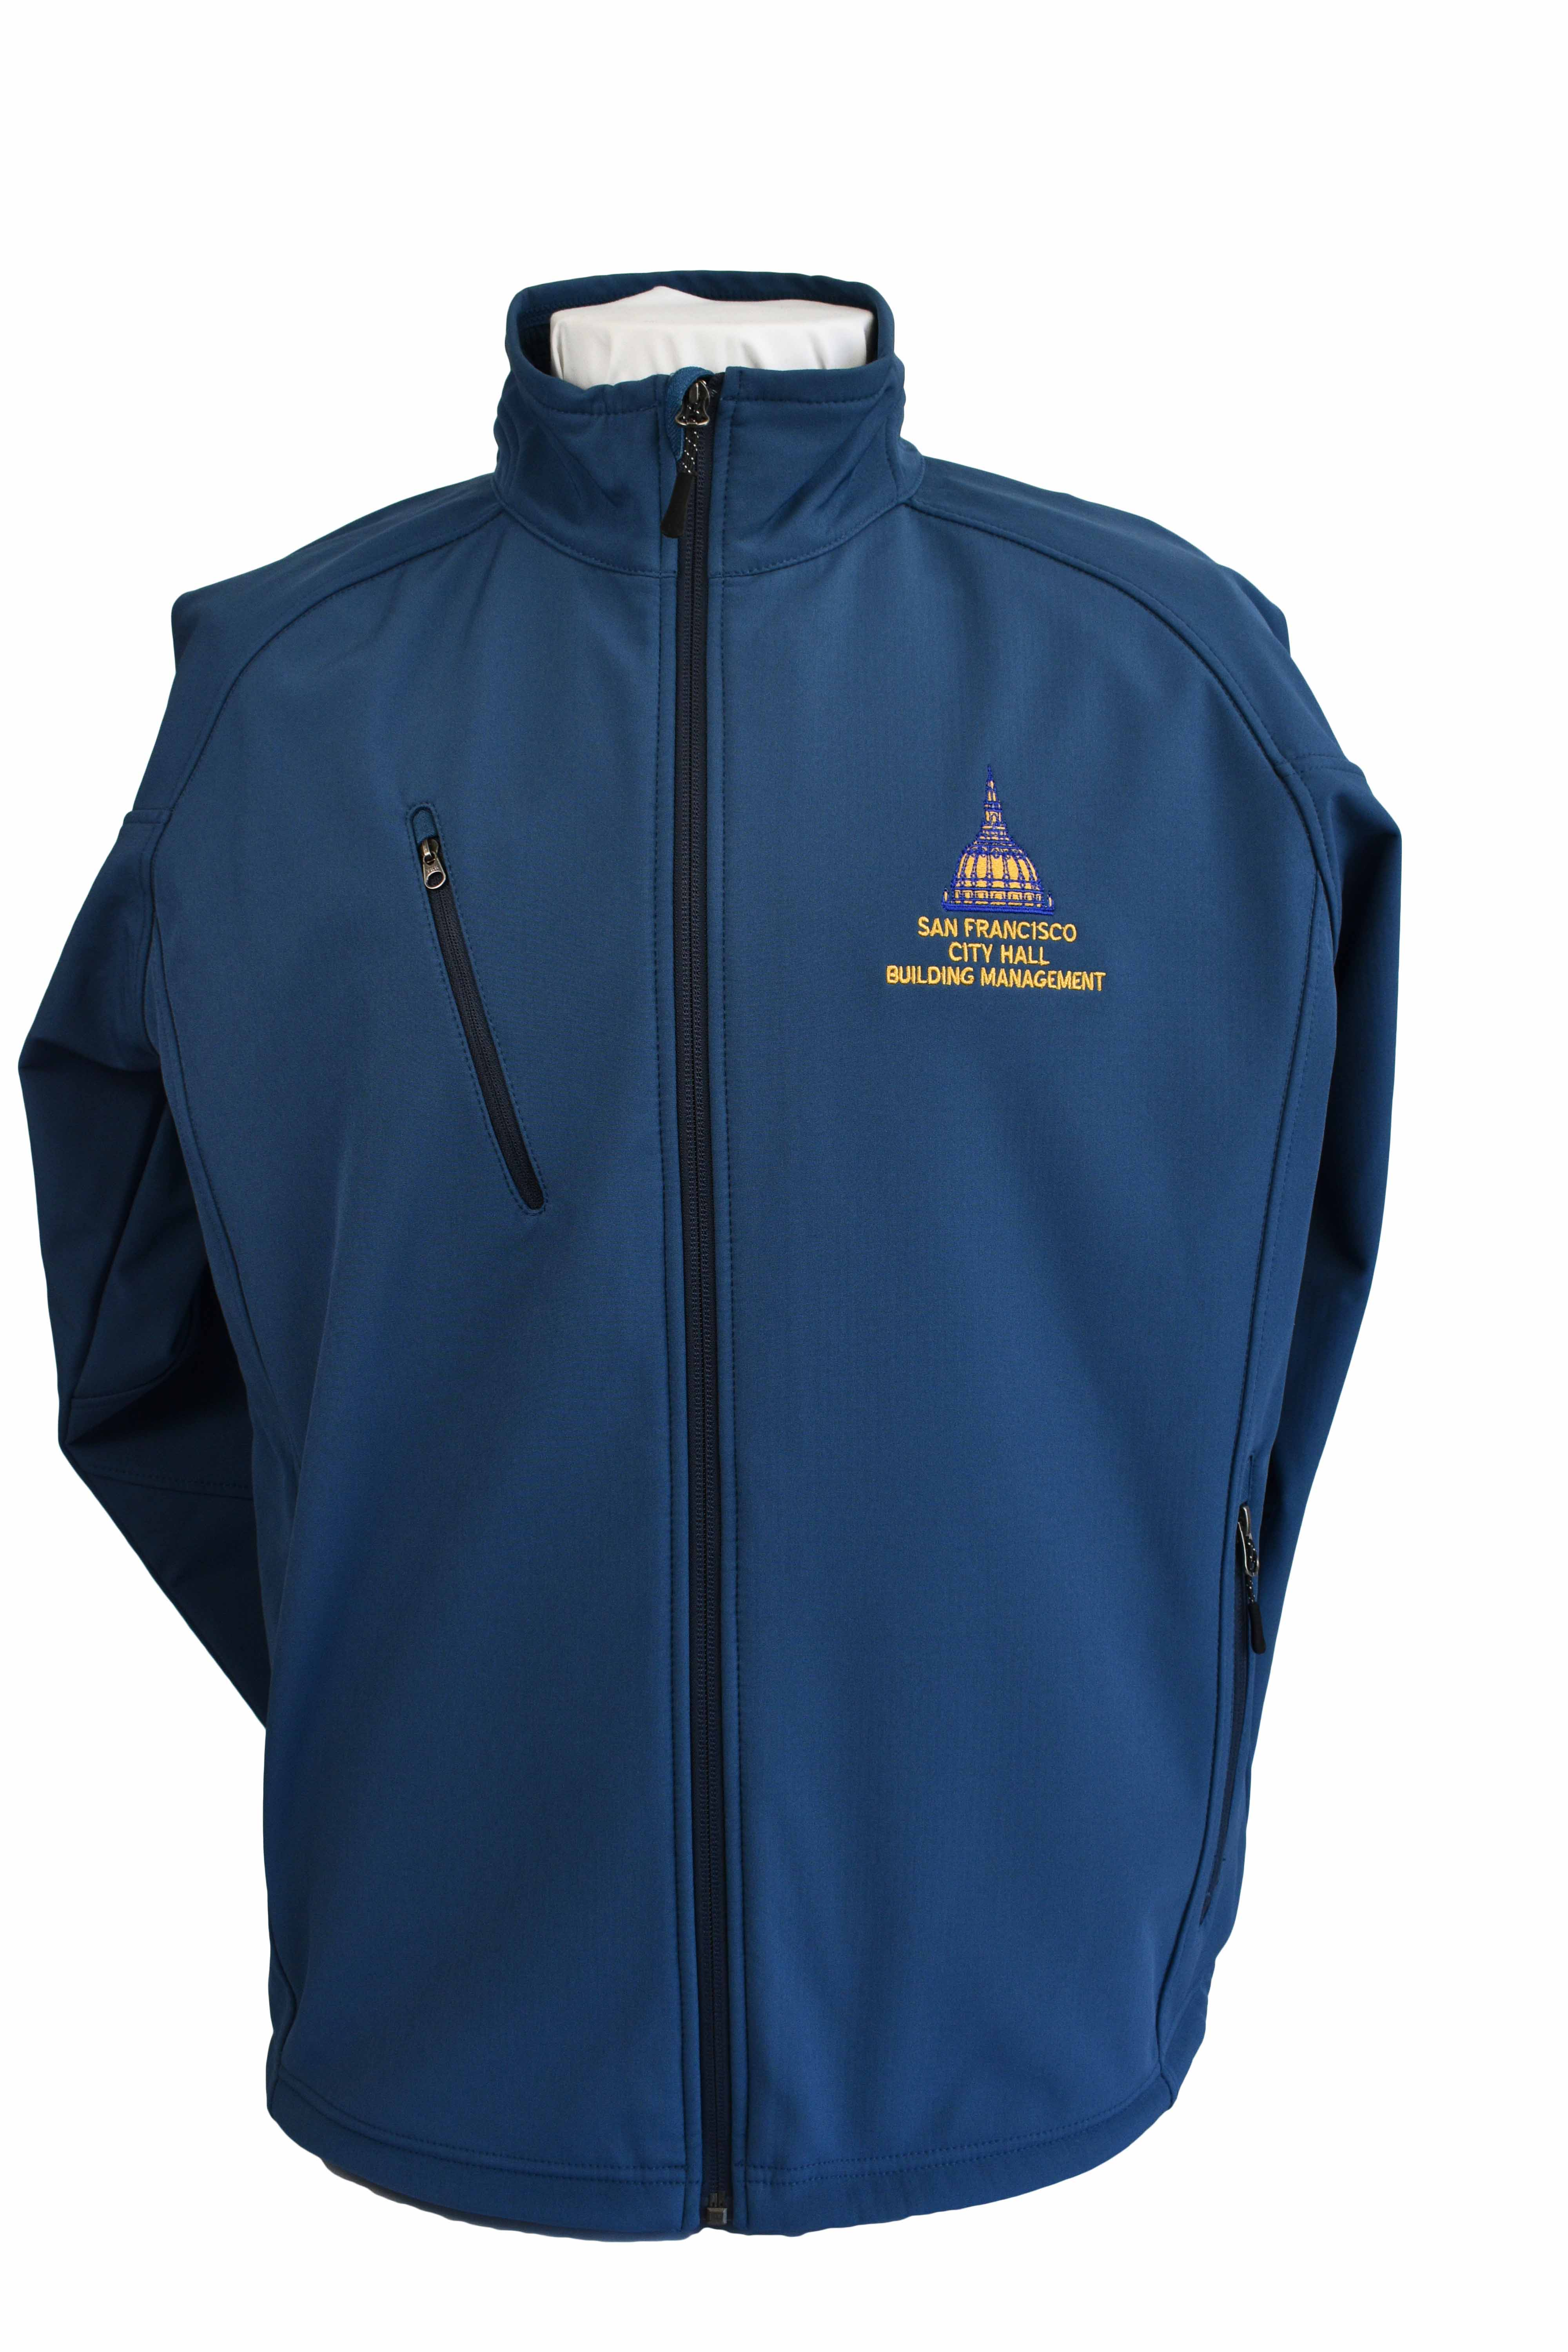 san francisco city hall building management uniforms blue jacket embroidery logo